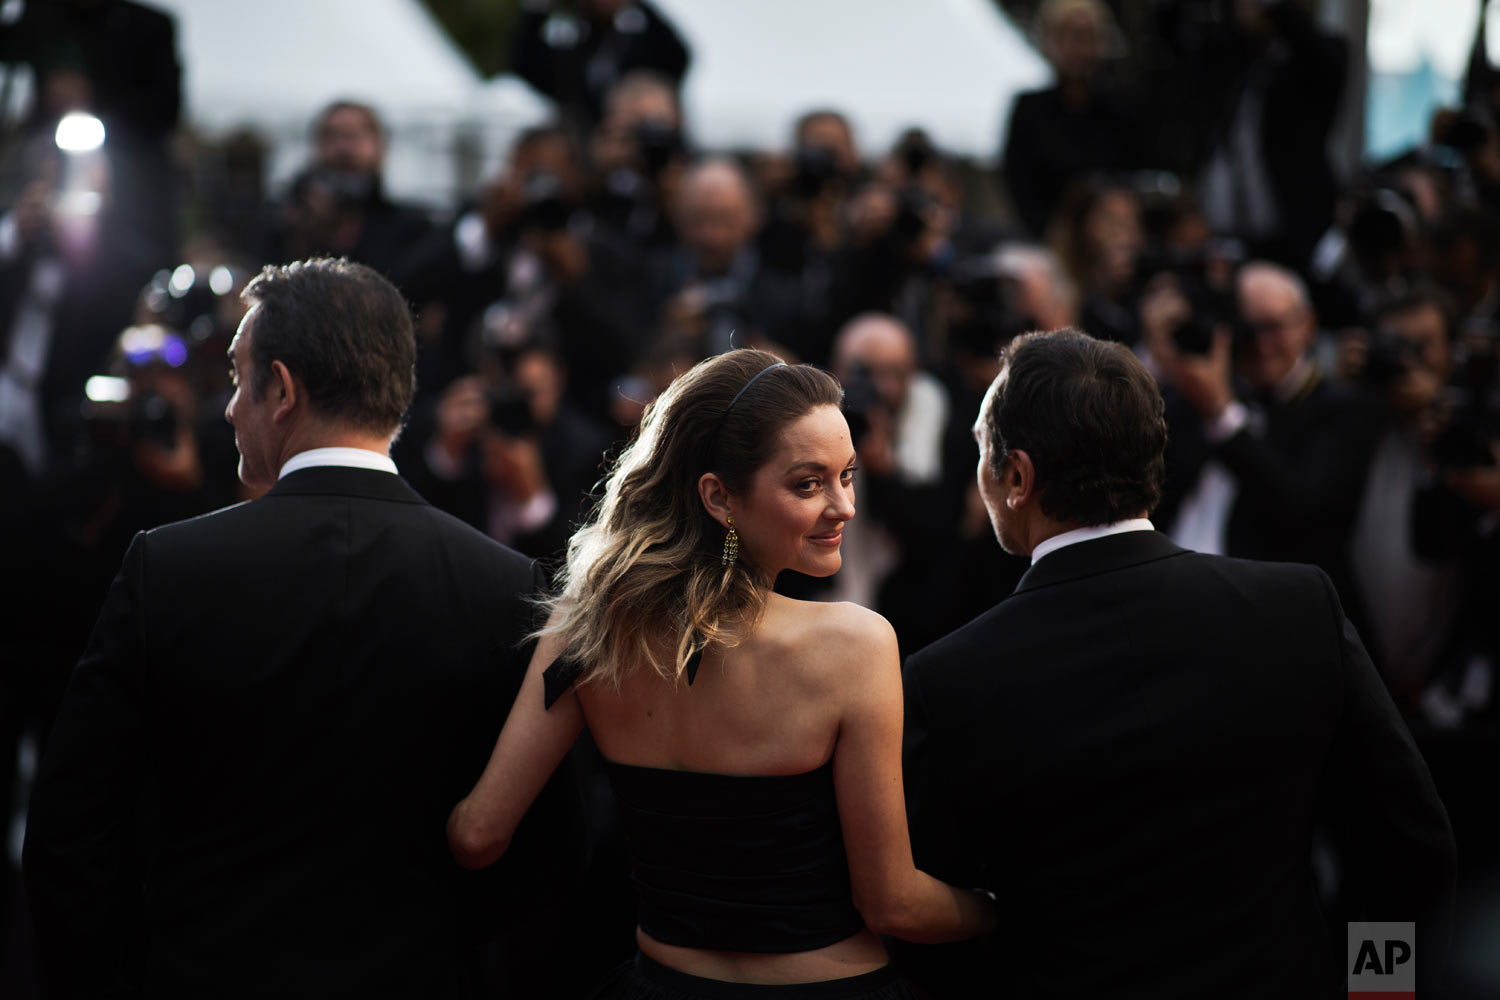 Actress Marion Cotillard, centre, poses for photographers upon arrival at the premiere of the film 'La Belle Epoque' at the 72nd international film festival, Cannes, southern France, May 20, 2019. (AP Photo/Petros Giannakouris)